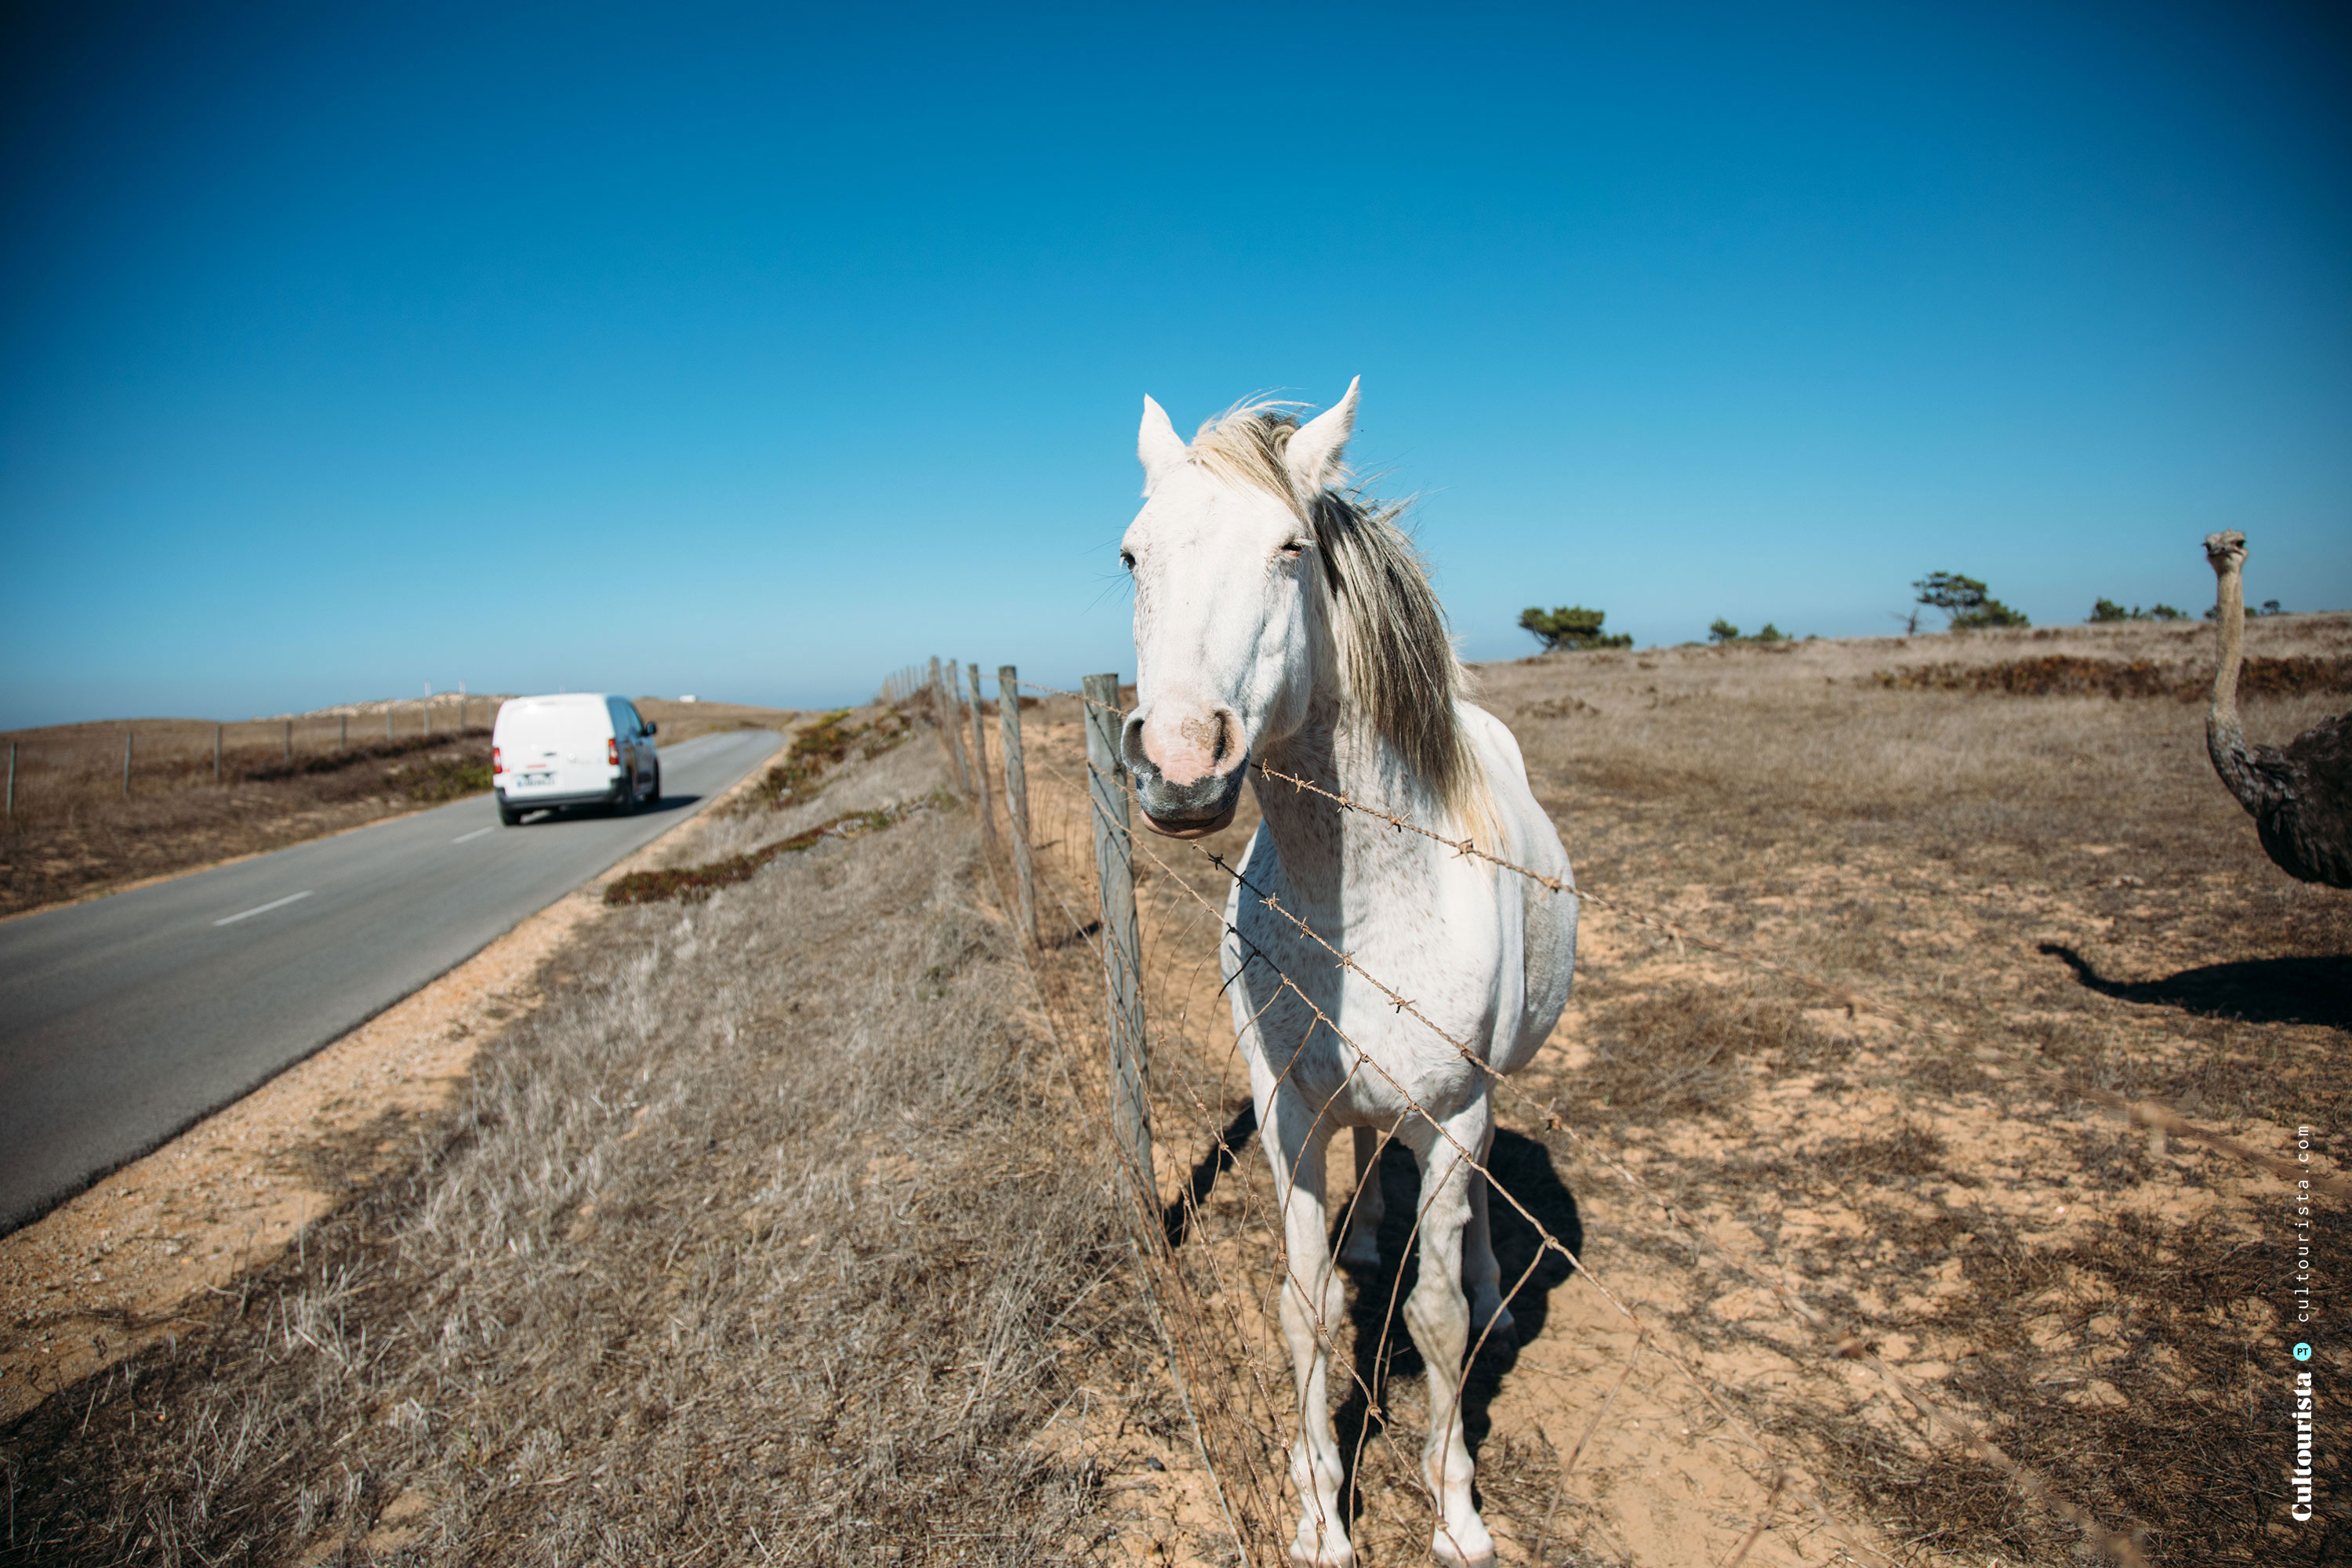 Horse by the road M1109 in Alentejo Portugal